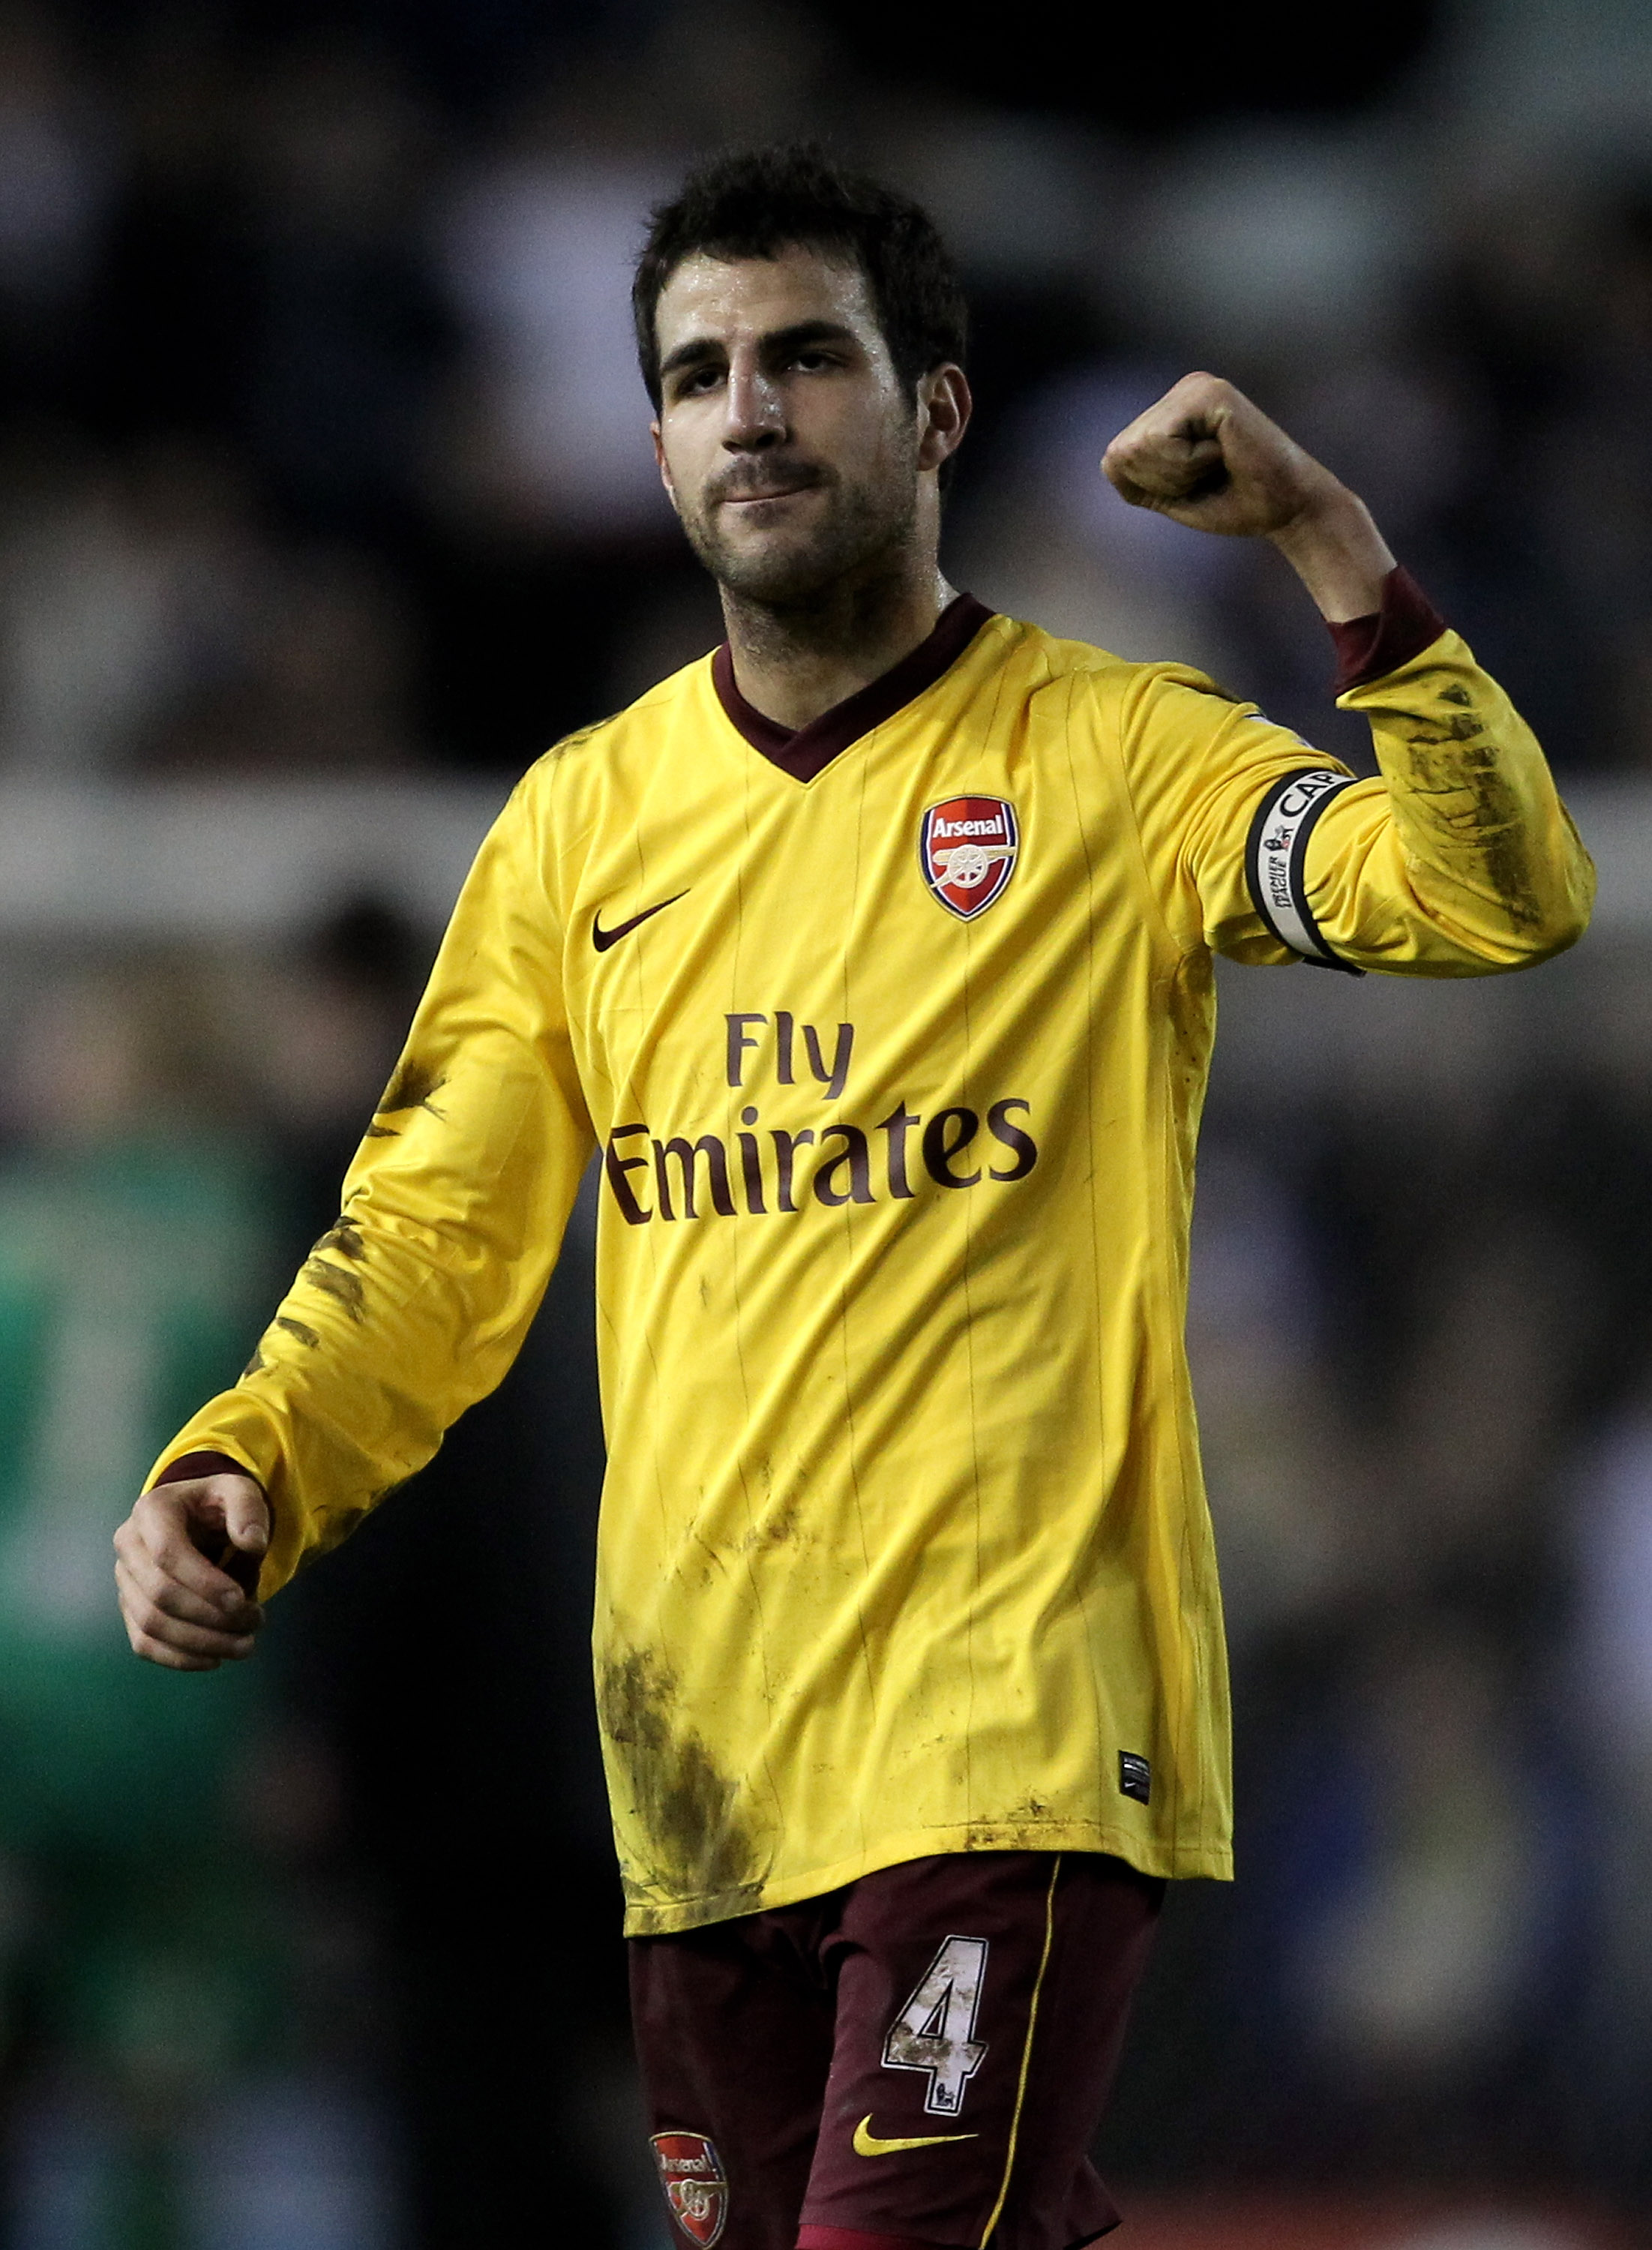 LEEDS, UNITED KINGDOM - JANUARY 19:  Cesc Fabregas of Arsenal celebrates at the end of the FA Cup sponsored by E.On Third Round Replay match between Leeds United and Arsenal at Elland Road on January 19, 2011 in Leeds, England. (Photo by Alex Livesey/Gett